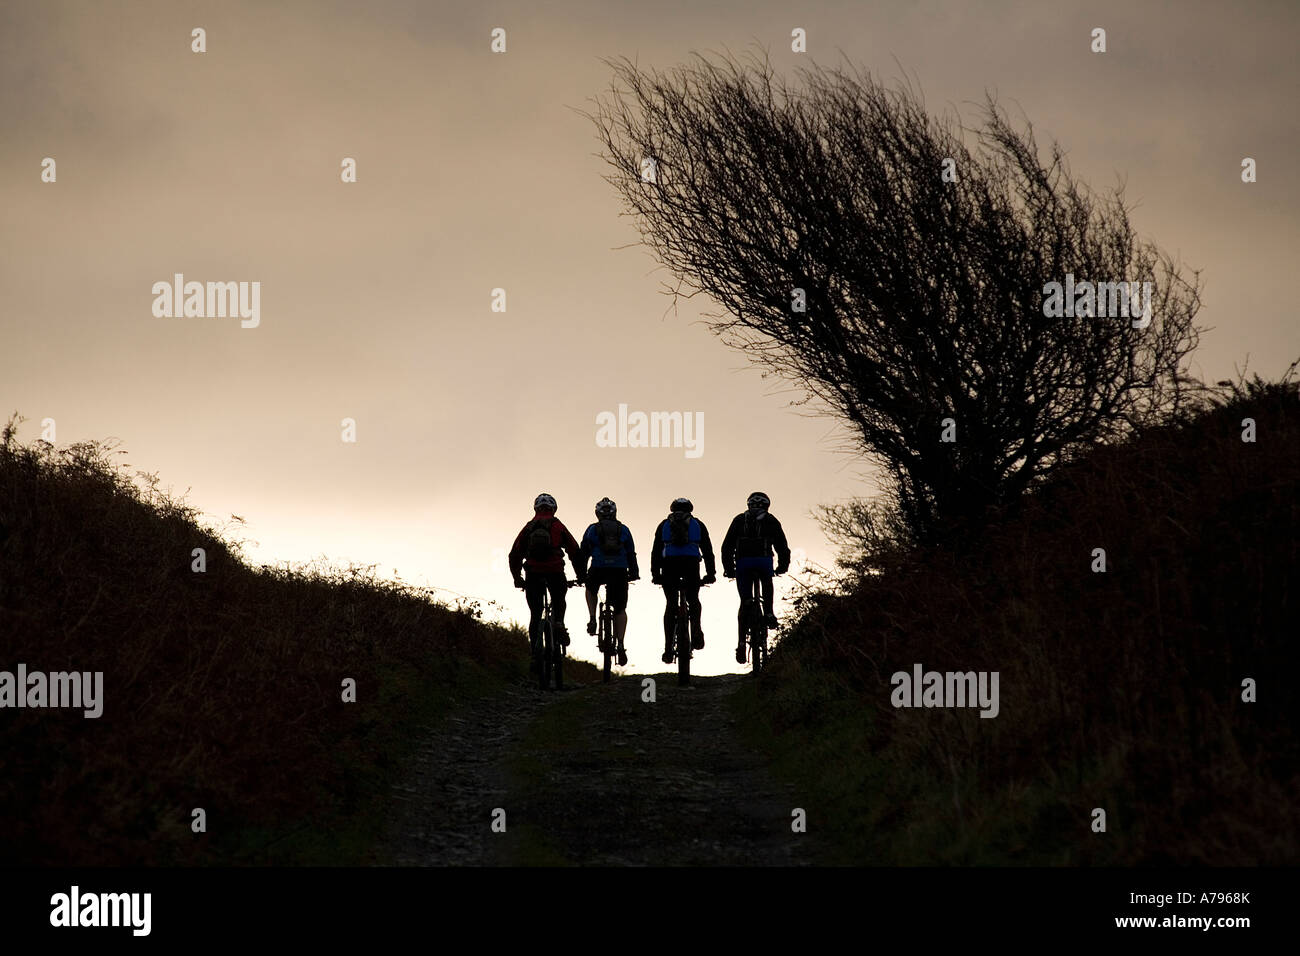 Mountain Bikers Ride in the Early Morning in the UK - Stock Image